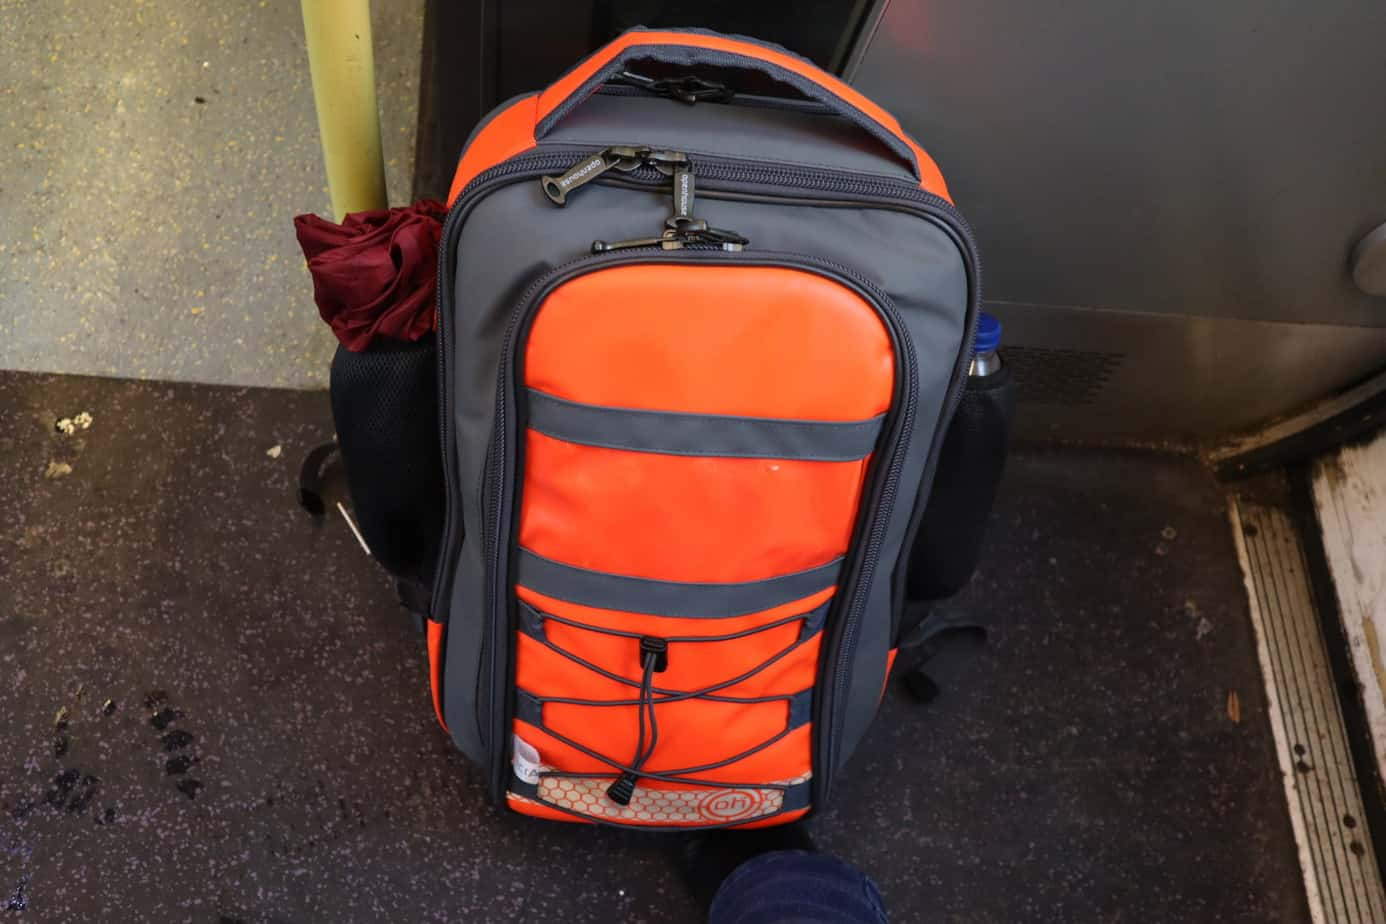 The-Adventures-of-the-Small-OH-Orange-Backpack-Continue....